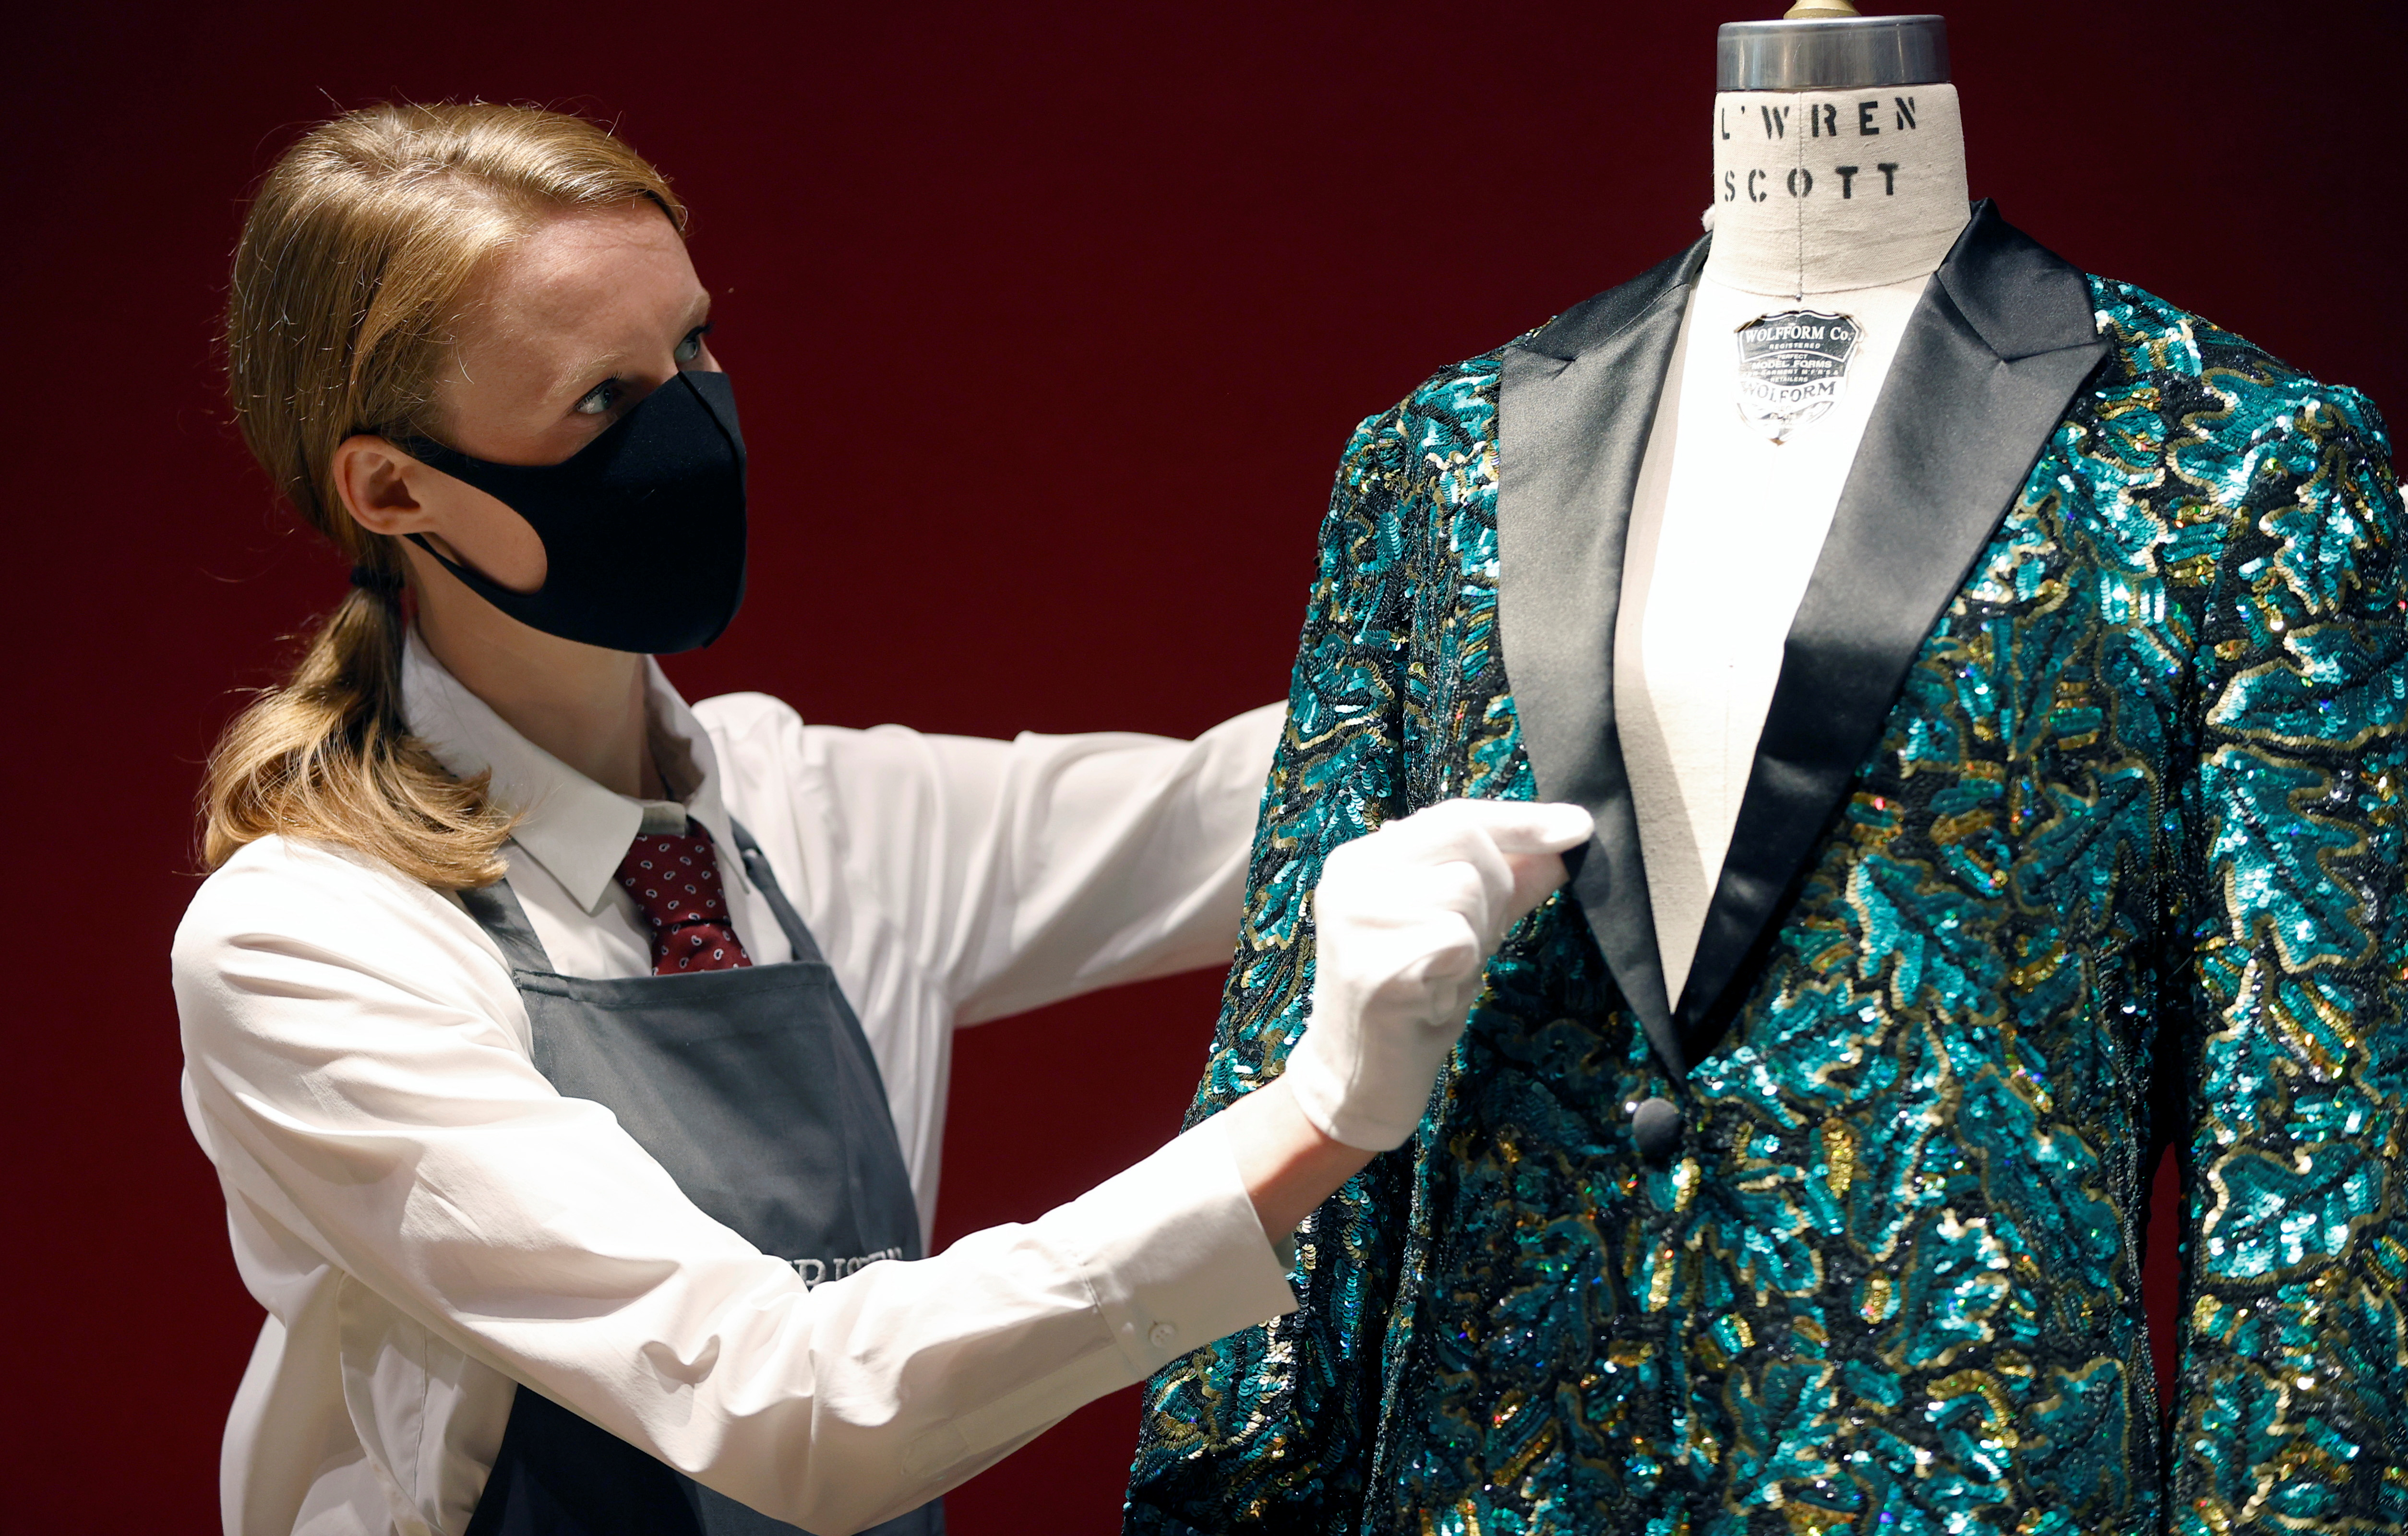 A gallery assistant poses for a photograph next to the Oak Leaf 'Glamouflage' jacket designed for Mick Jagger by designer L'Wren Scott at Christie's in London, Britain, June 10, 2021. REUTERS/John Sibley